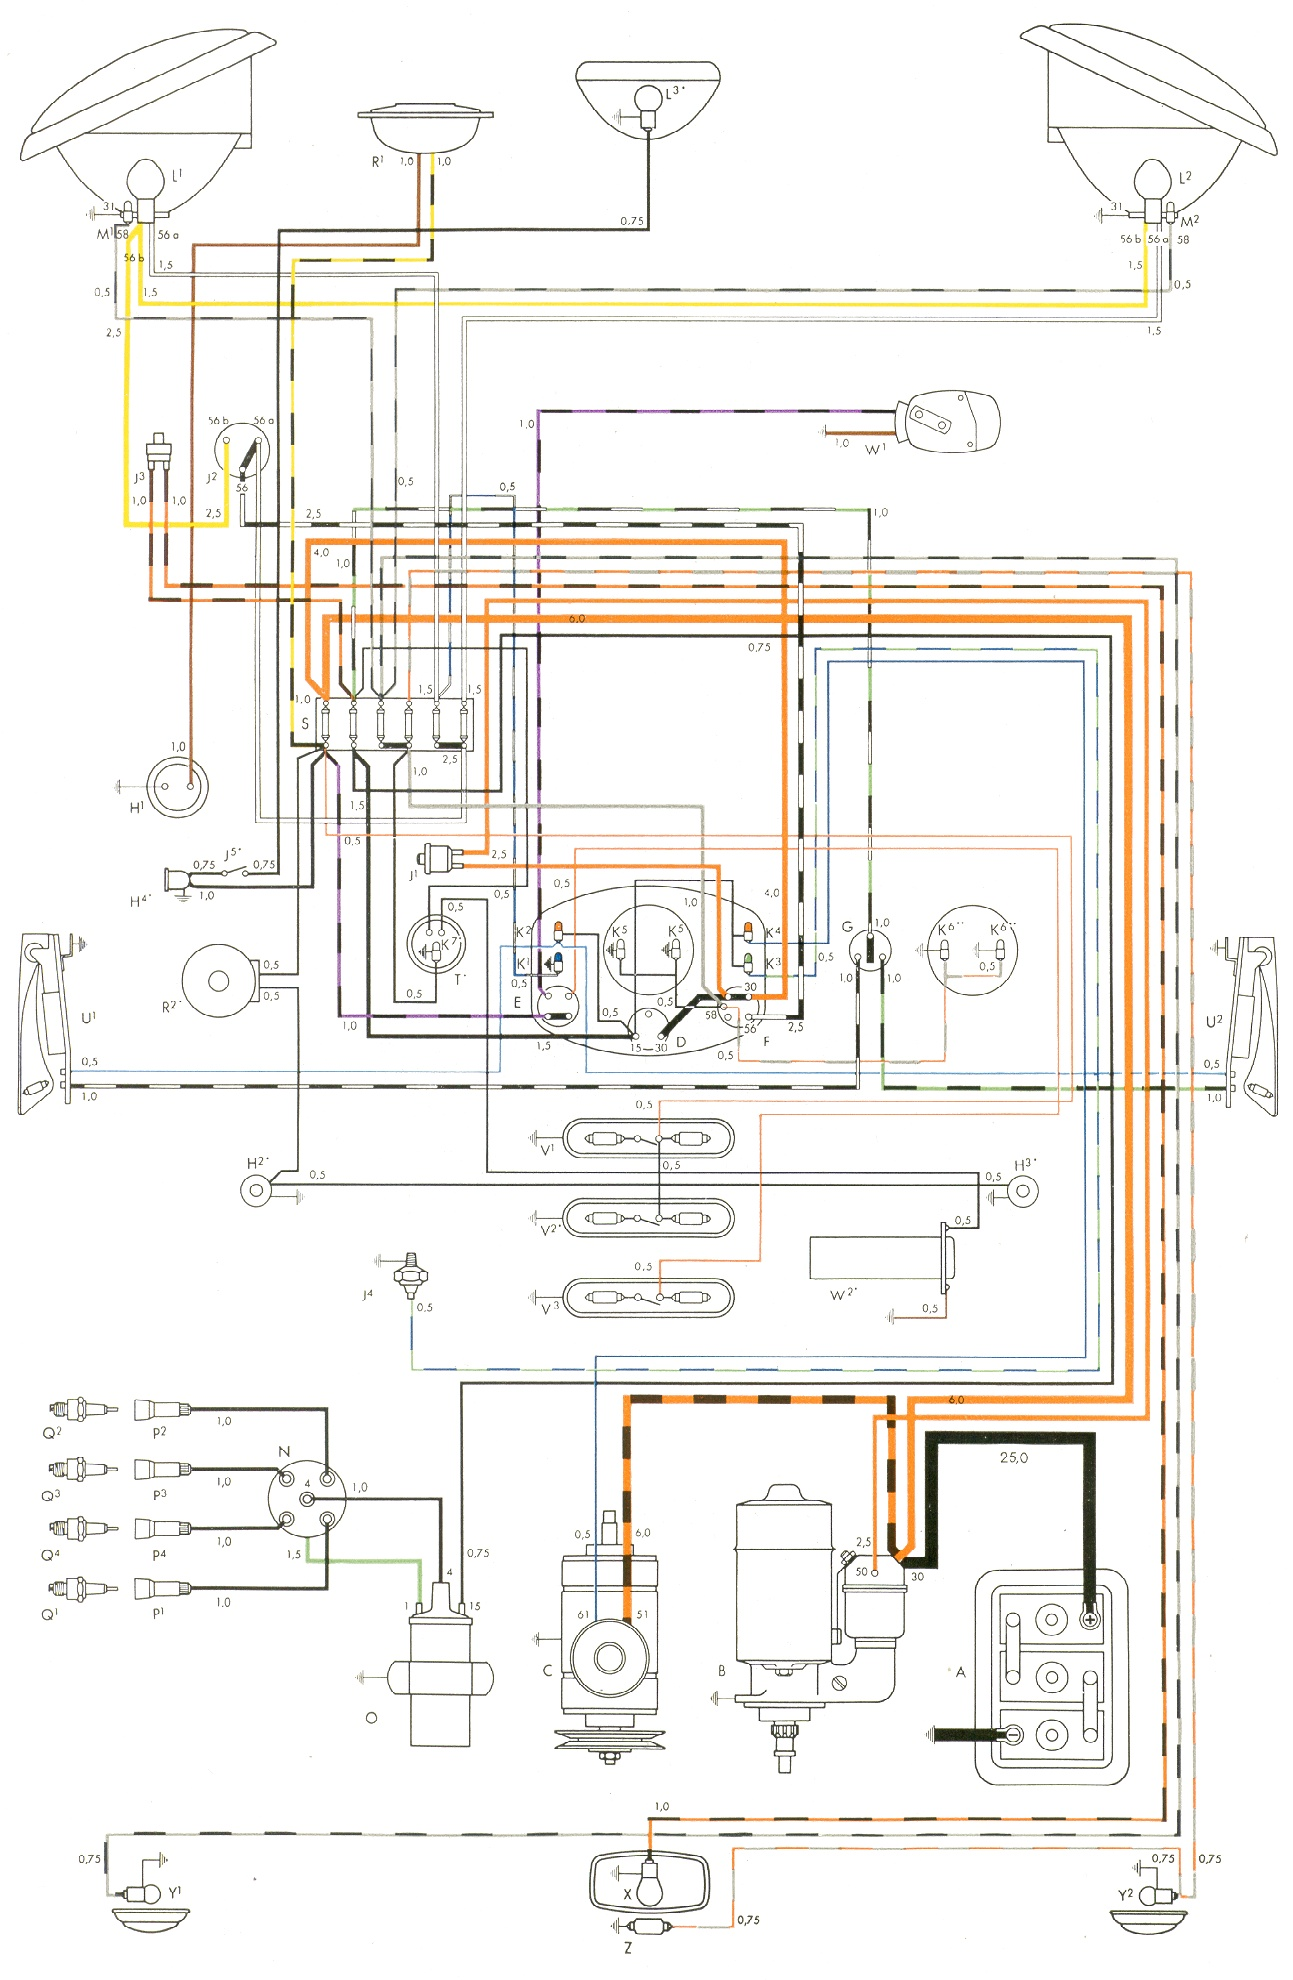 bus 54 vw wiring diagrams 1969 vw beetle wiring diagram at bayanpartner.co